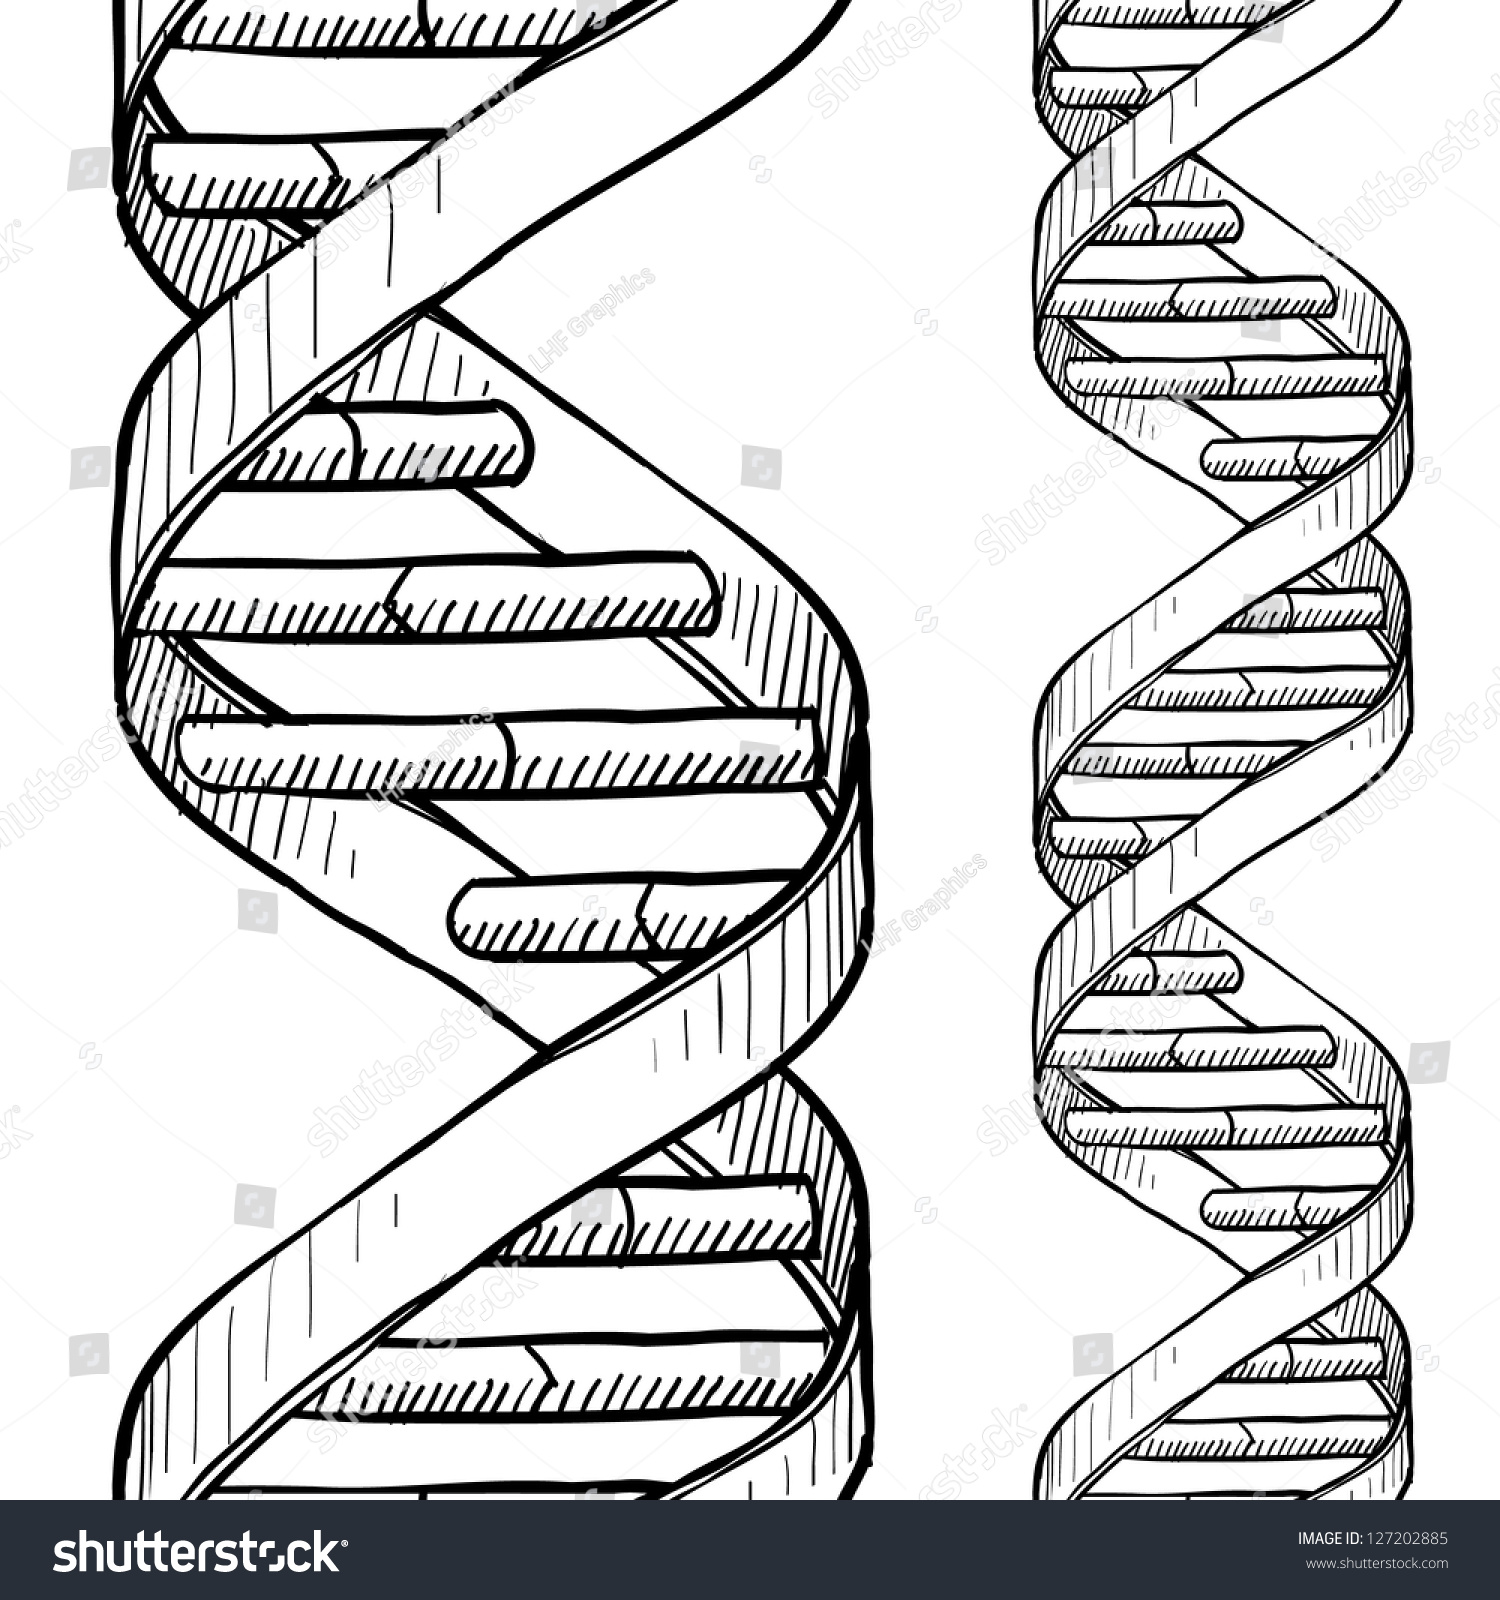 Doodle Style Dna Double Helix Seamless Stock Vector